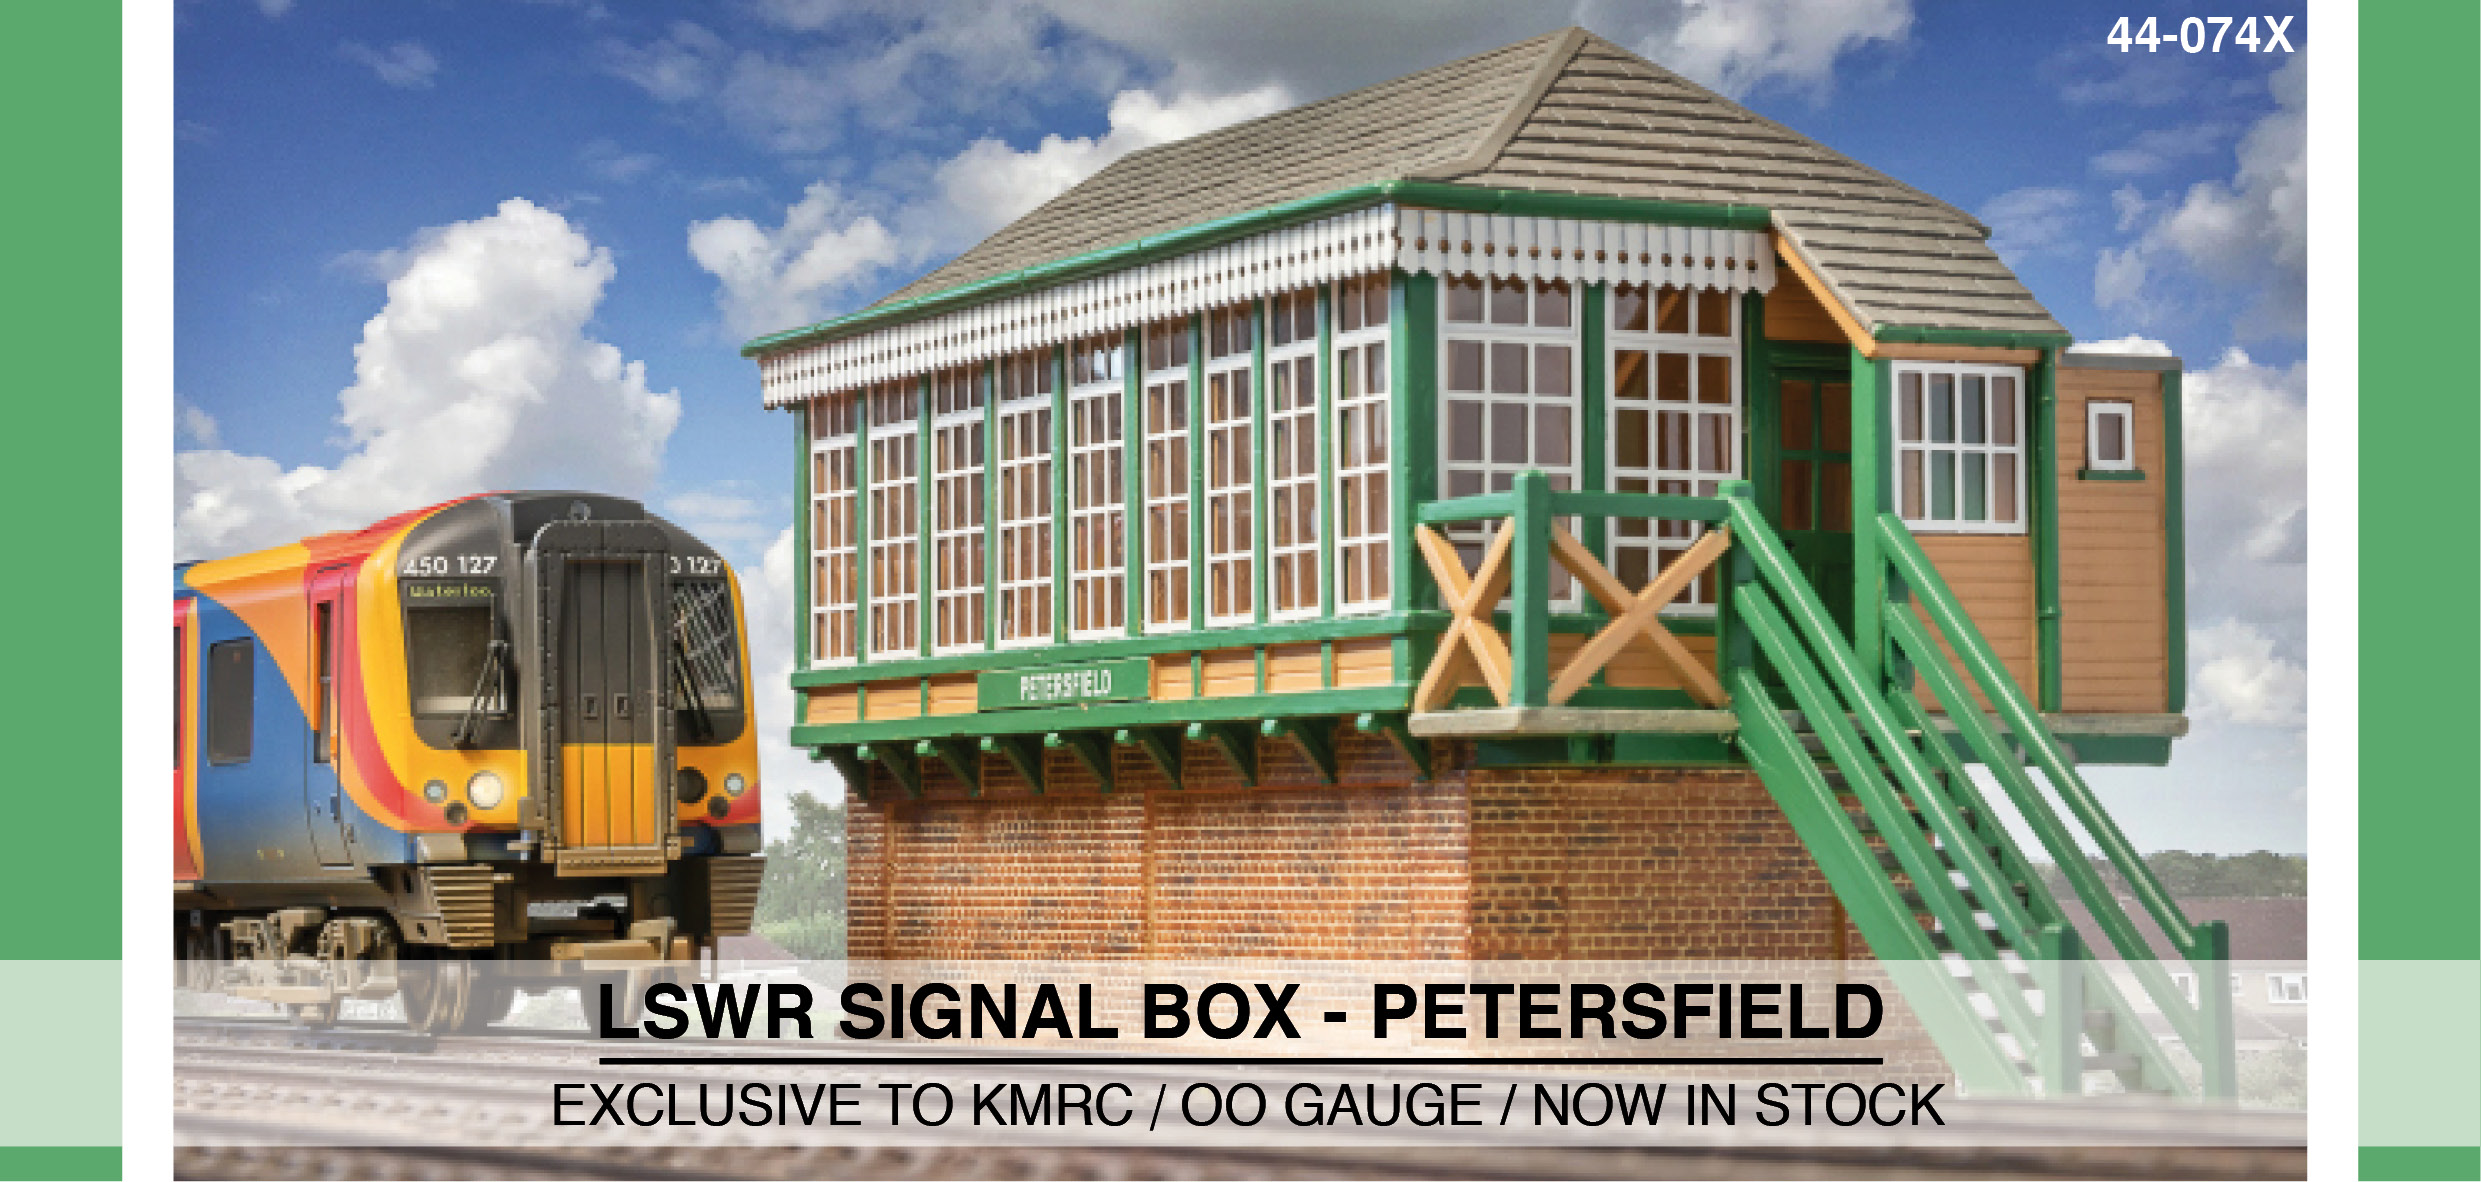 LSWR Petersfield Signal Box Image